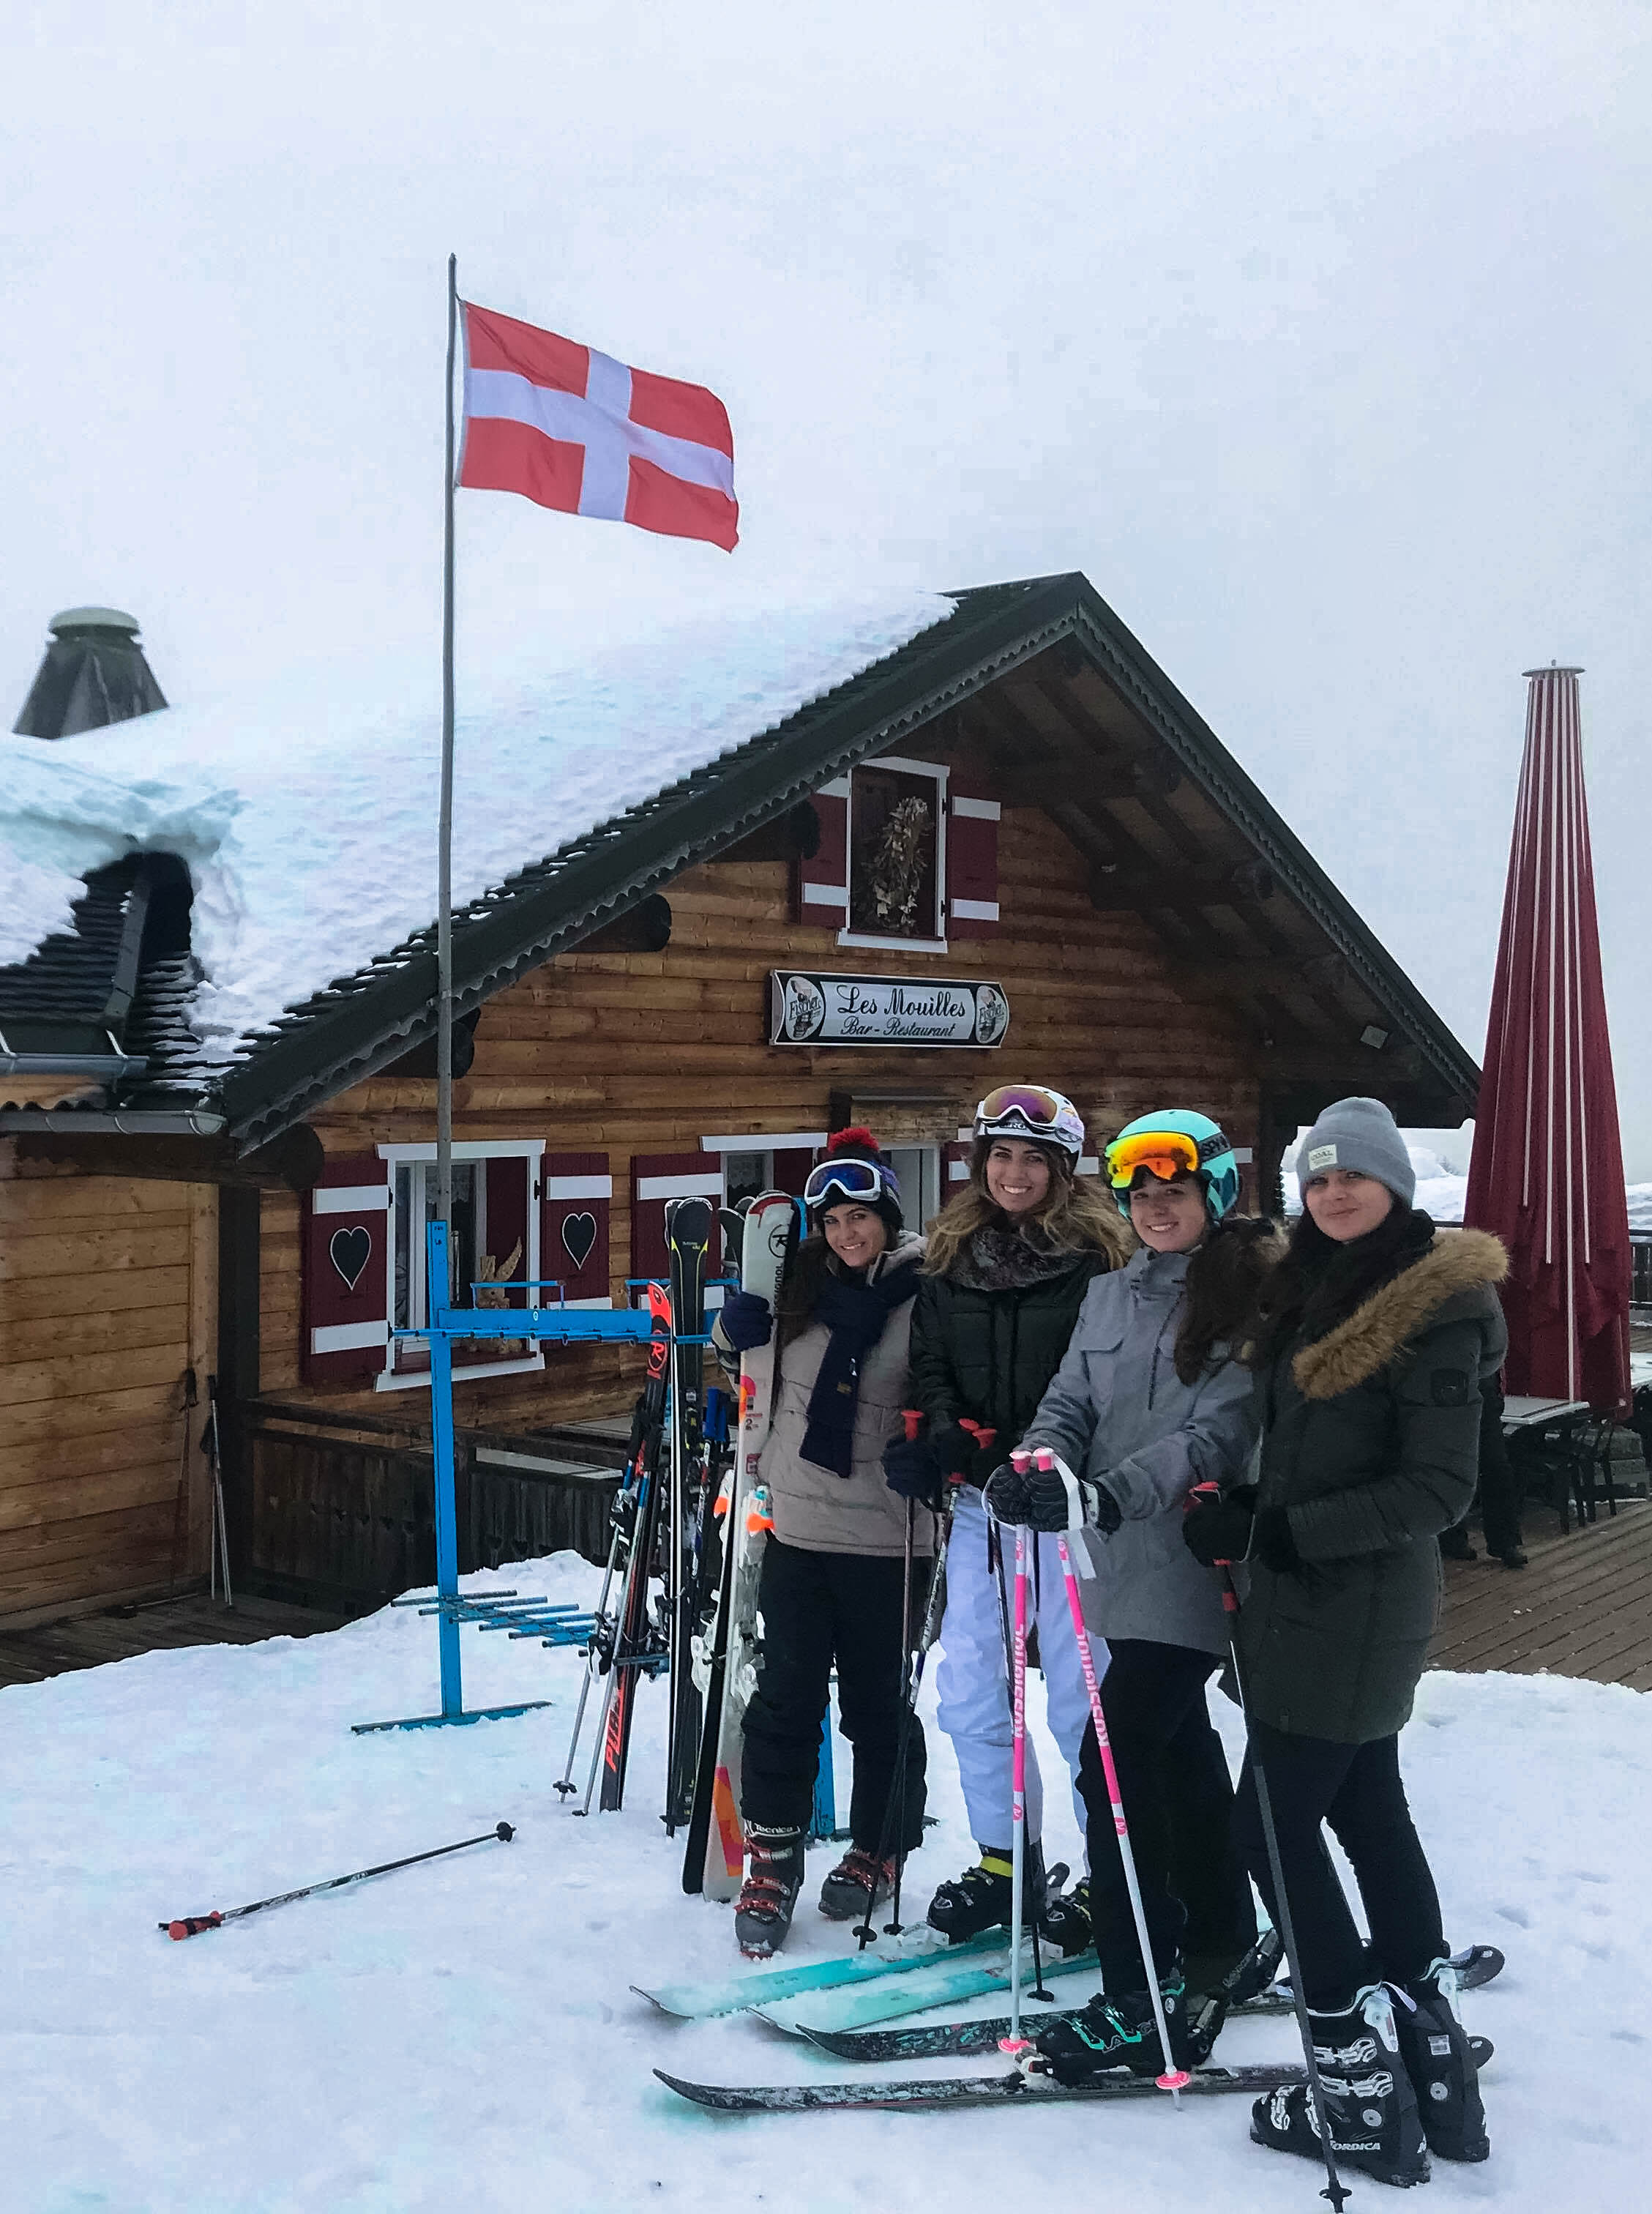 Meeting in the Alpes - My best friend Steph and her 2 sisters made the trek out to Les Gets to spend a day on the slopes with me!